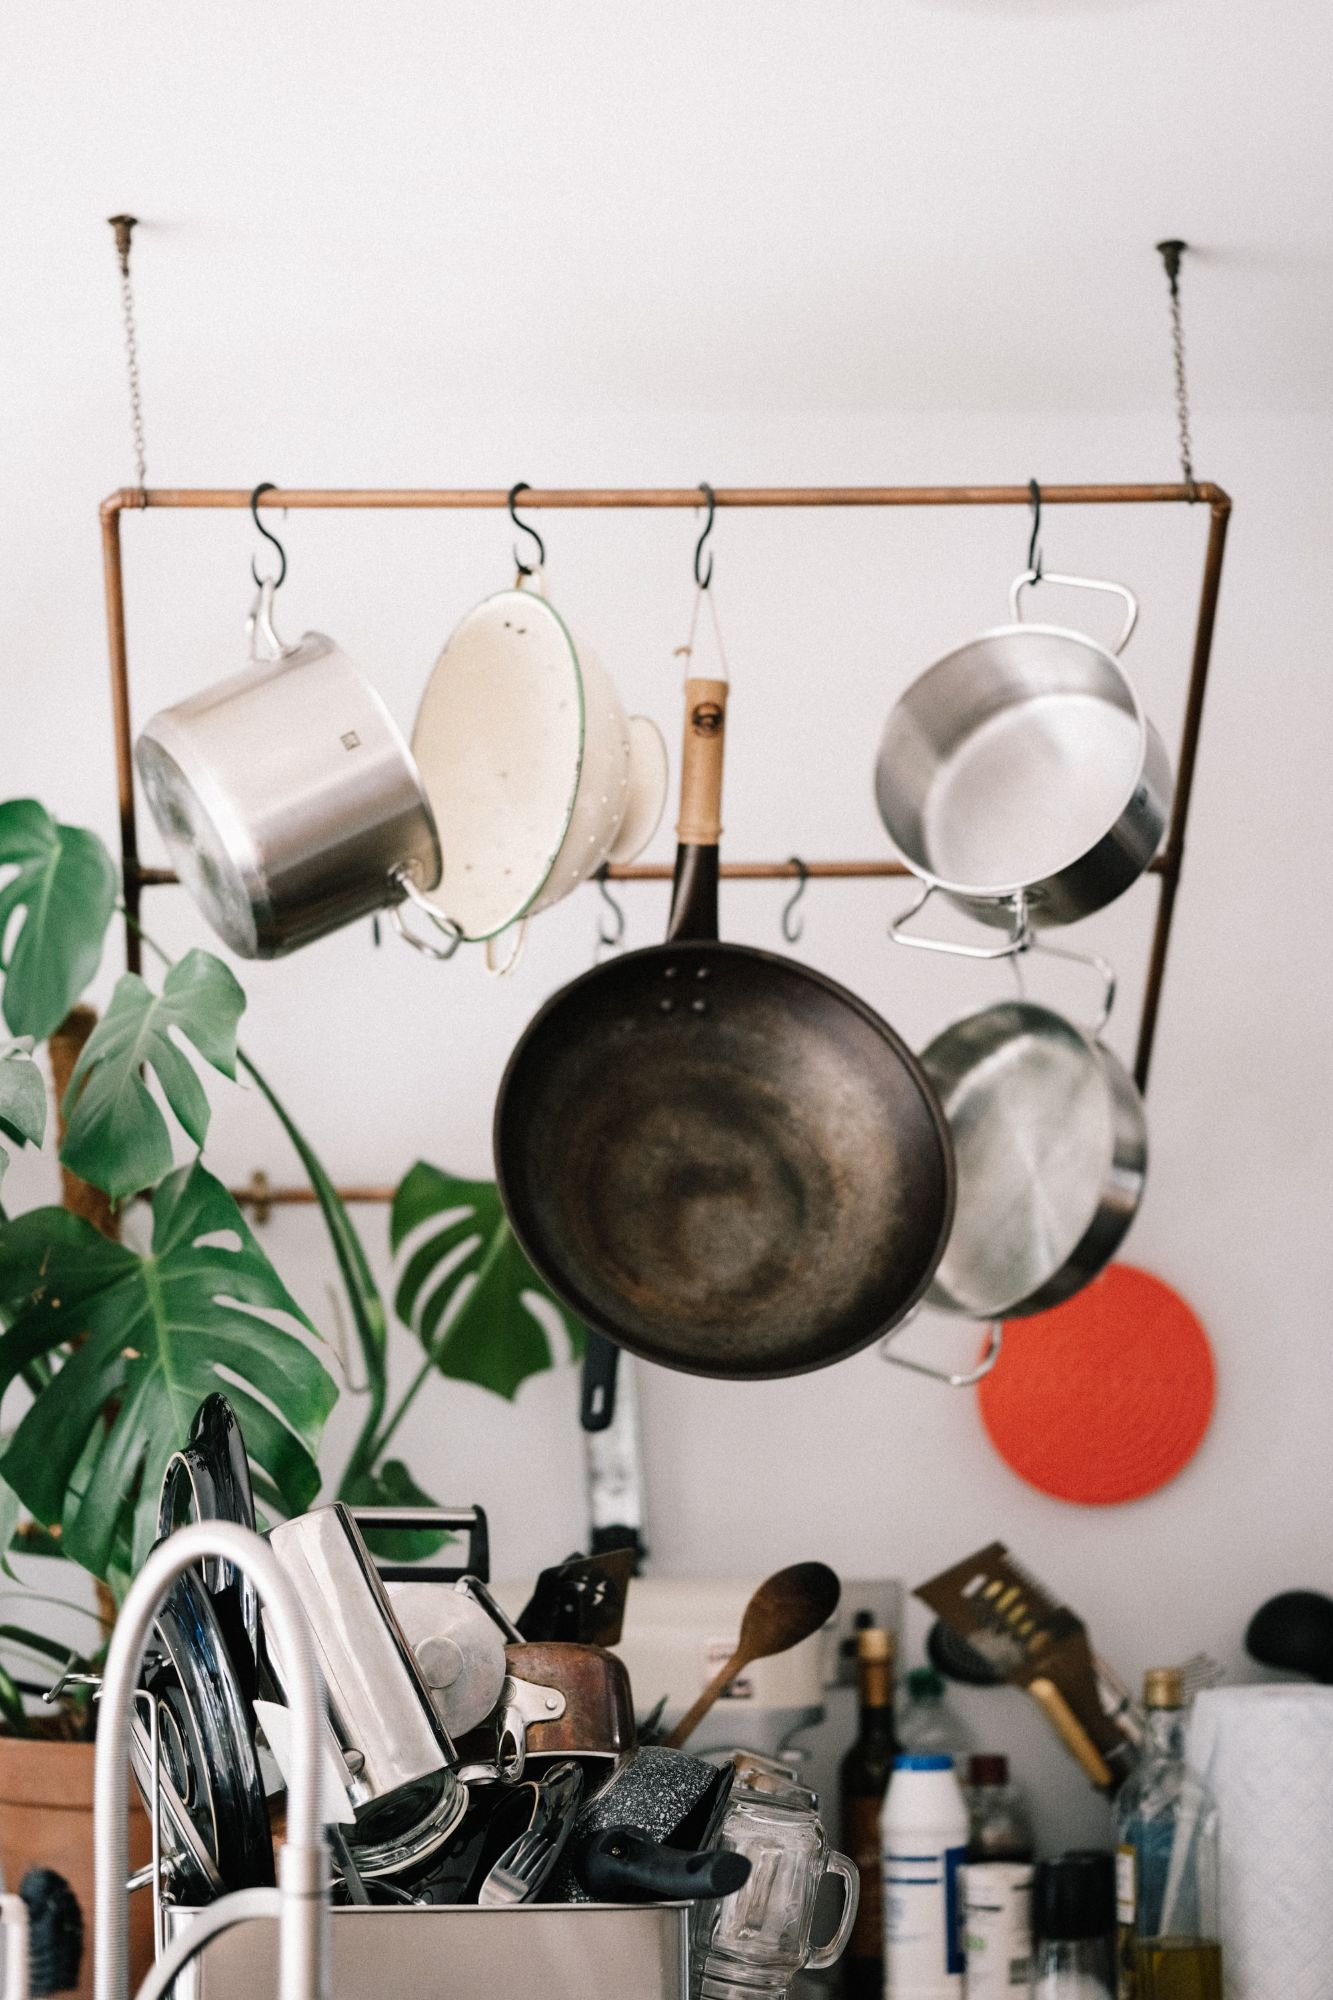 Pots & pans hanging from a rack in a clean kitchen.